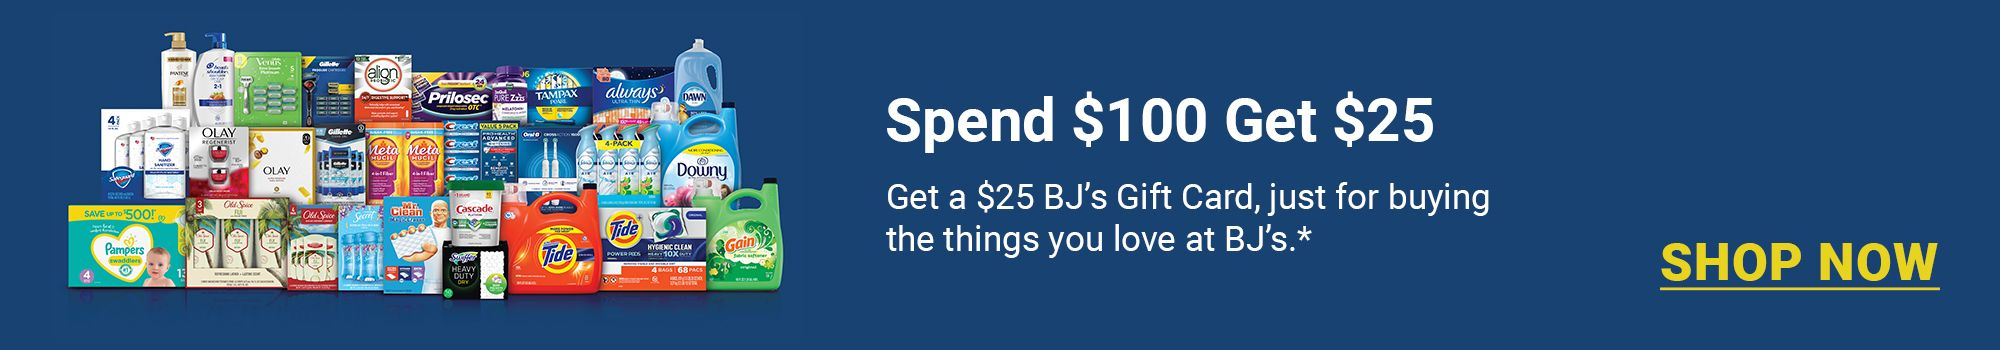 Spend $100 get $25. Get a $25 gift card, just for buying the things you live at BJ's.*